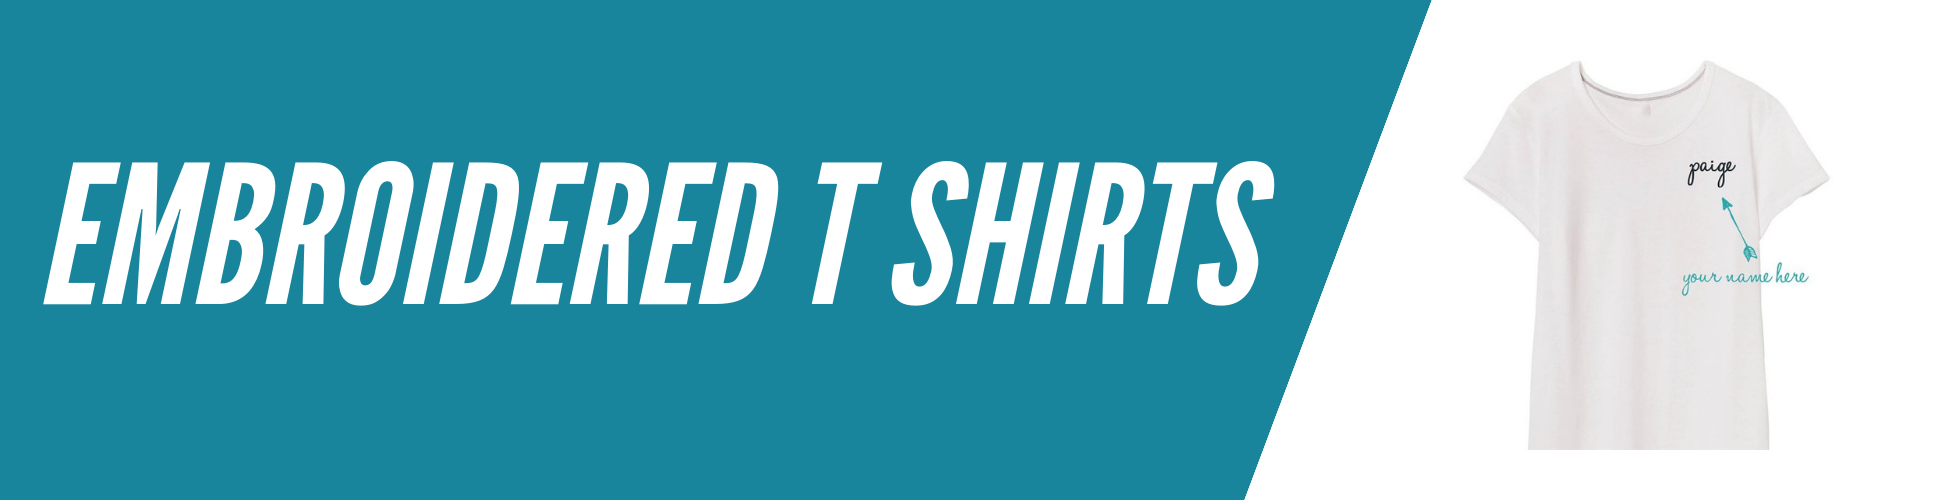 embroidered-t-shirts-banner.png